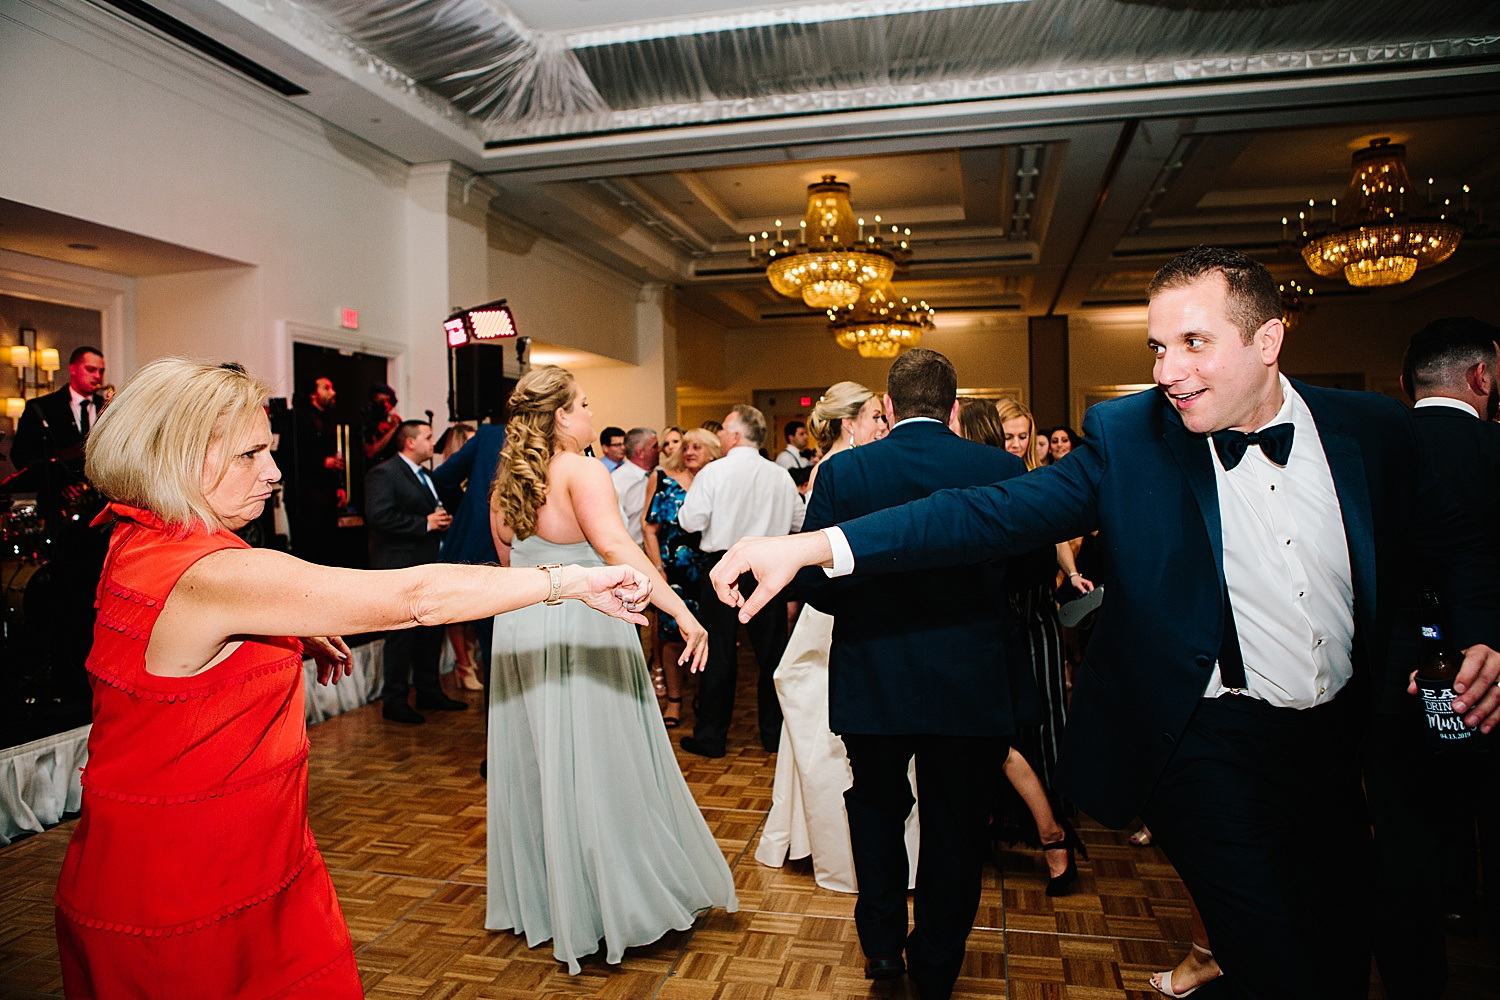 courtneyryan_sheraton_societyhill_philadelphia_merchantsexchange_wedding_image101.jpg